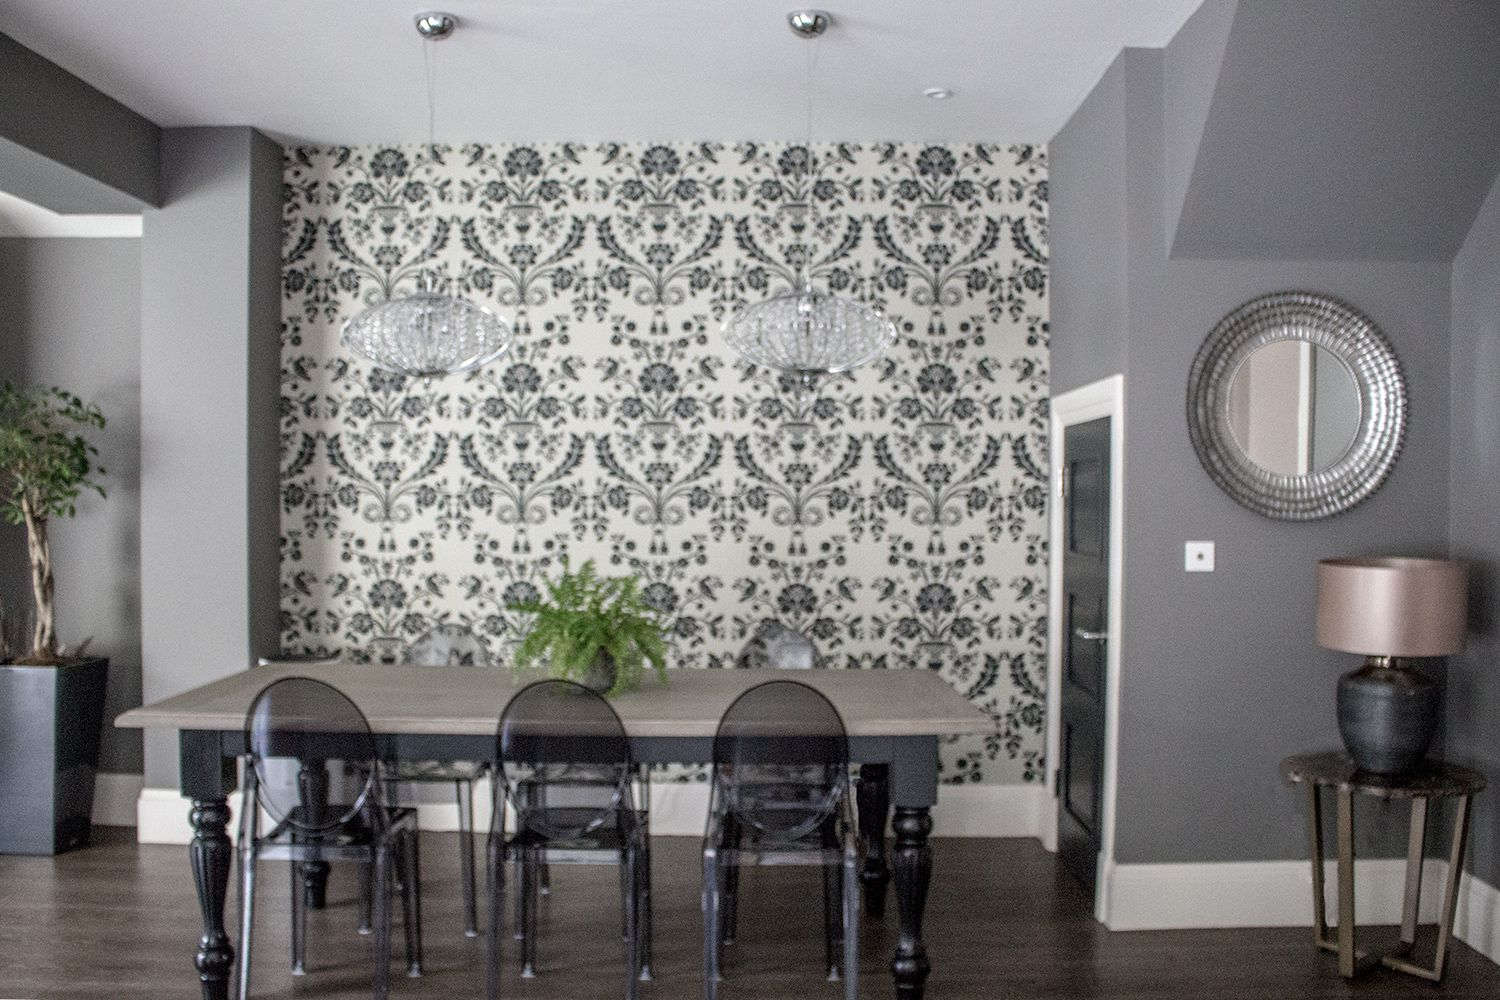 A photo of the new table and chairs in front of the glamorous black and white wallpaper.